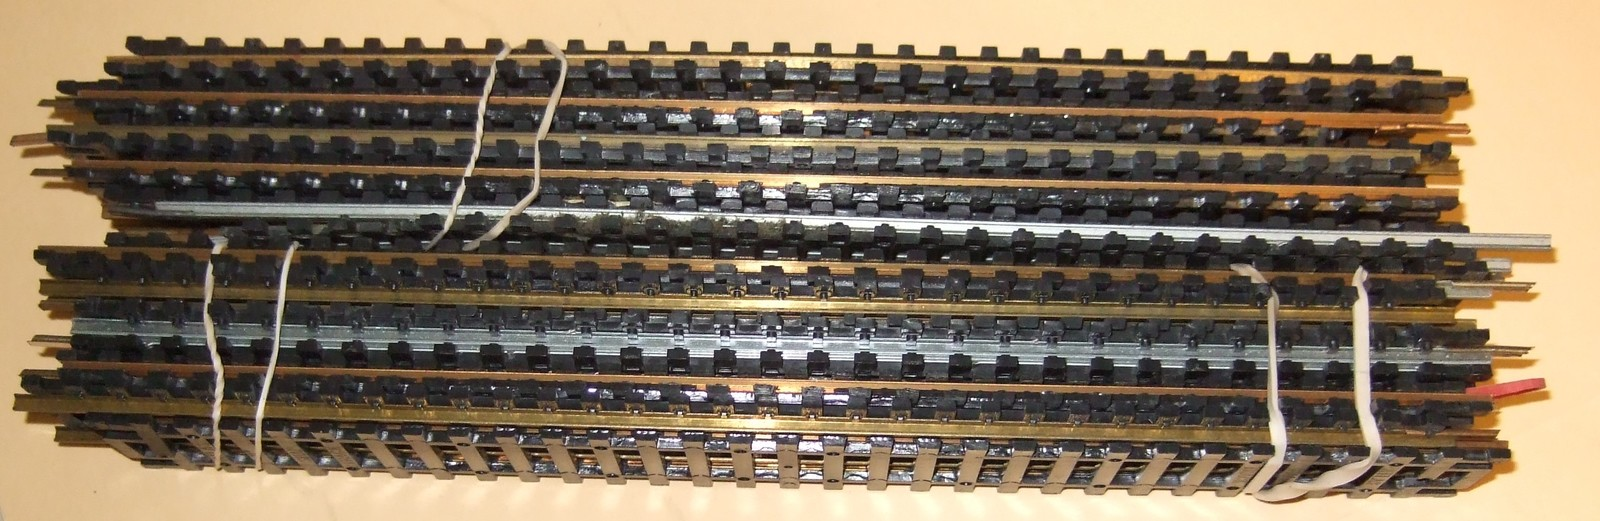 HO Train Tracks  -  (Pack of 20 Straight Tracks)